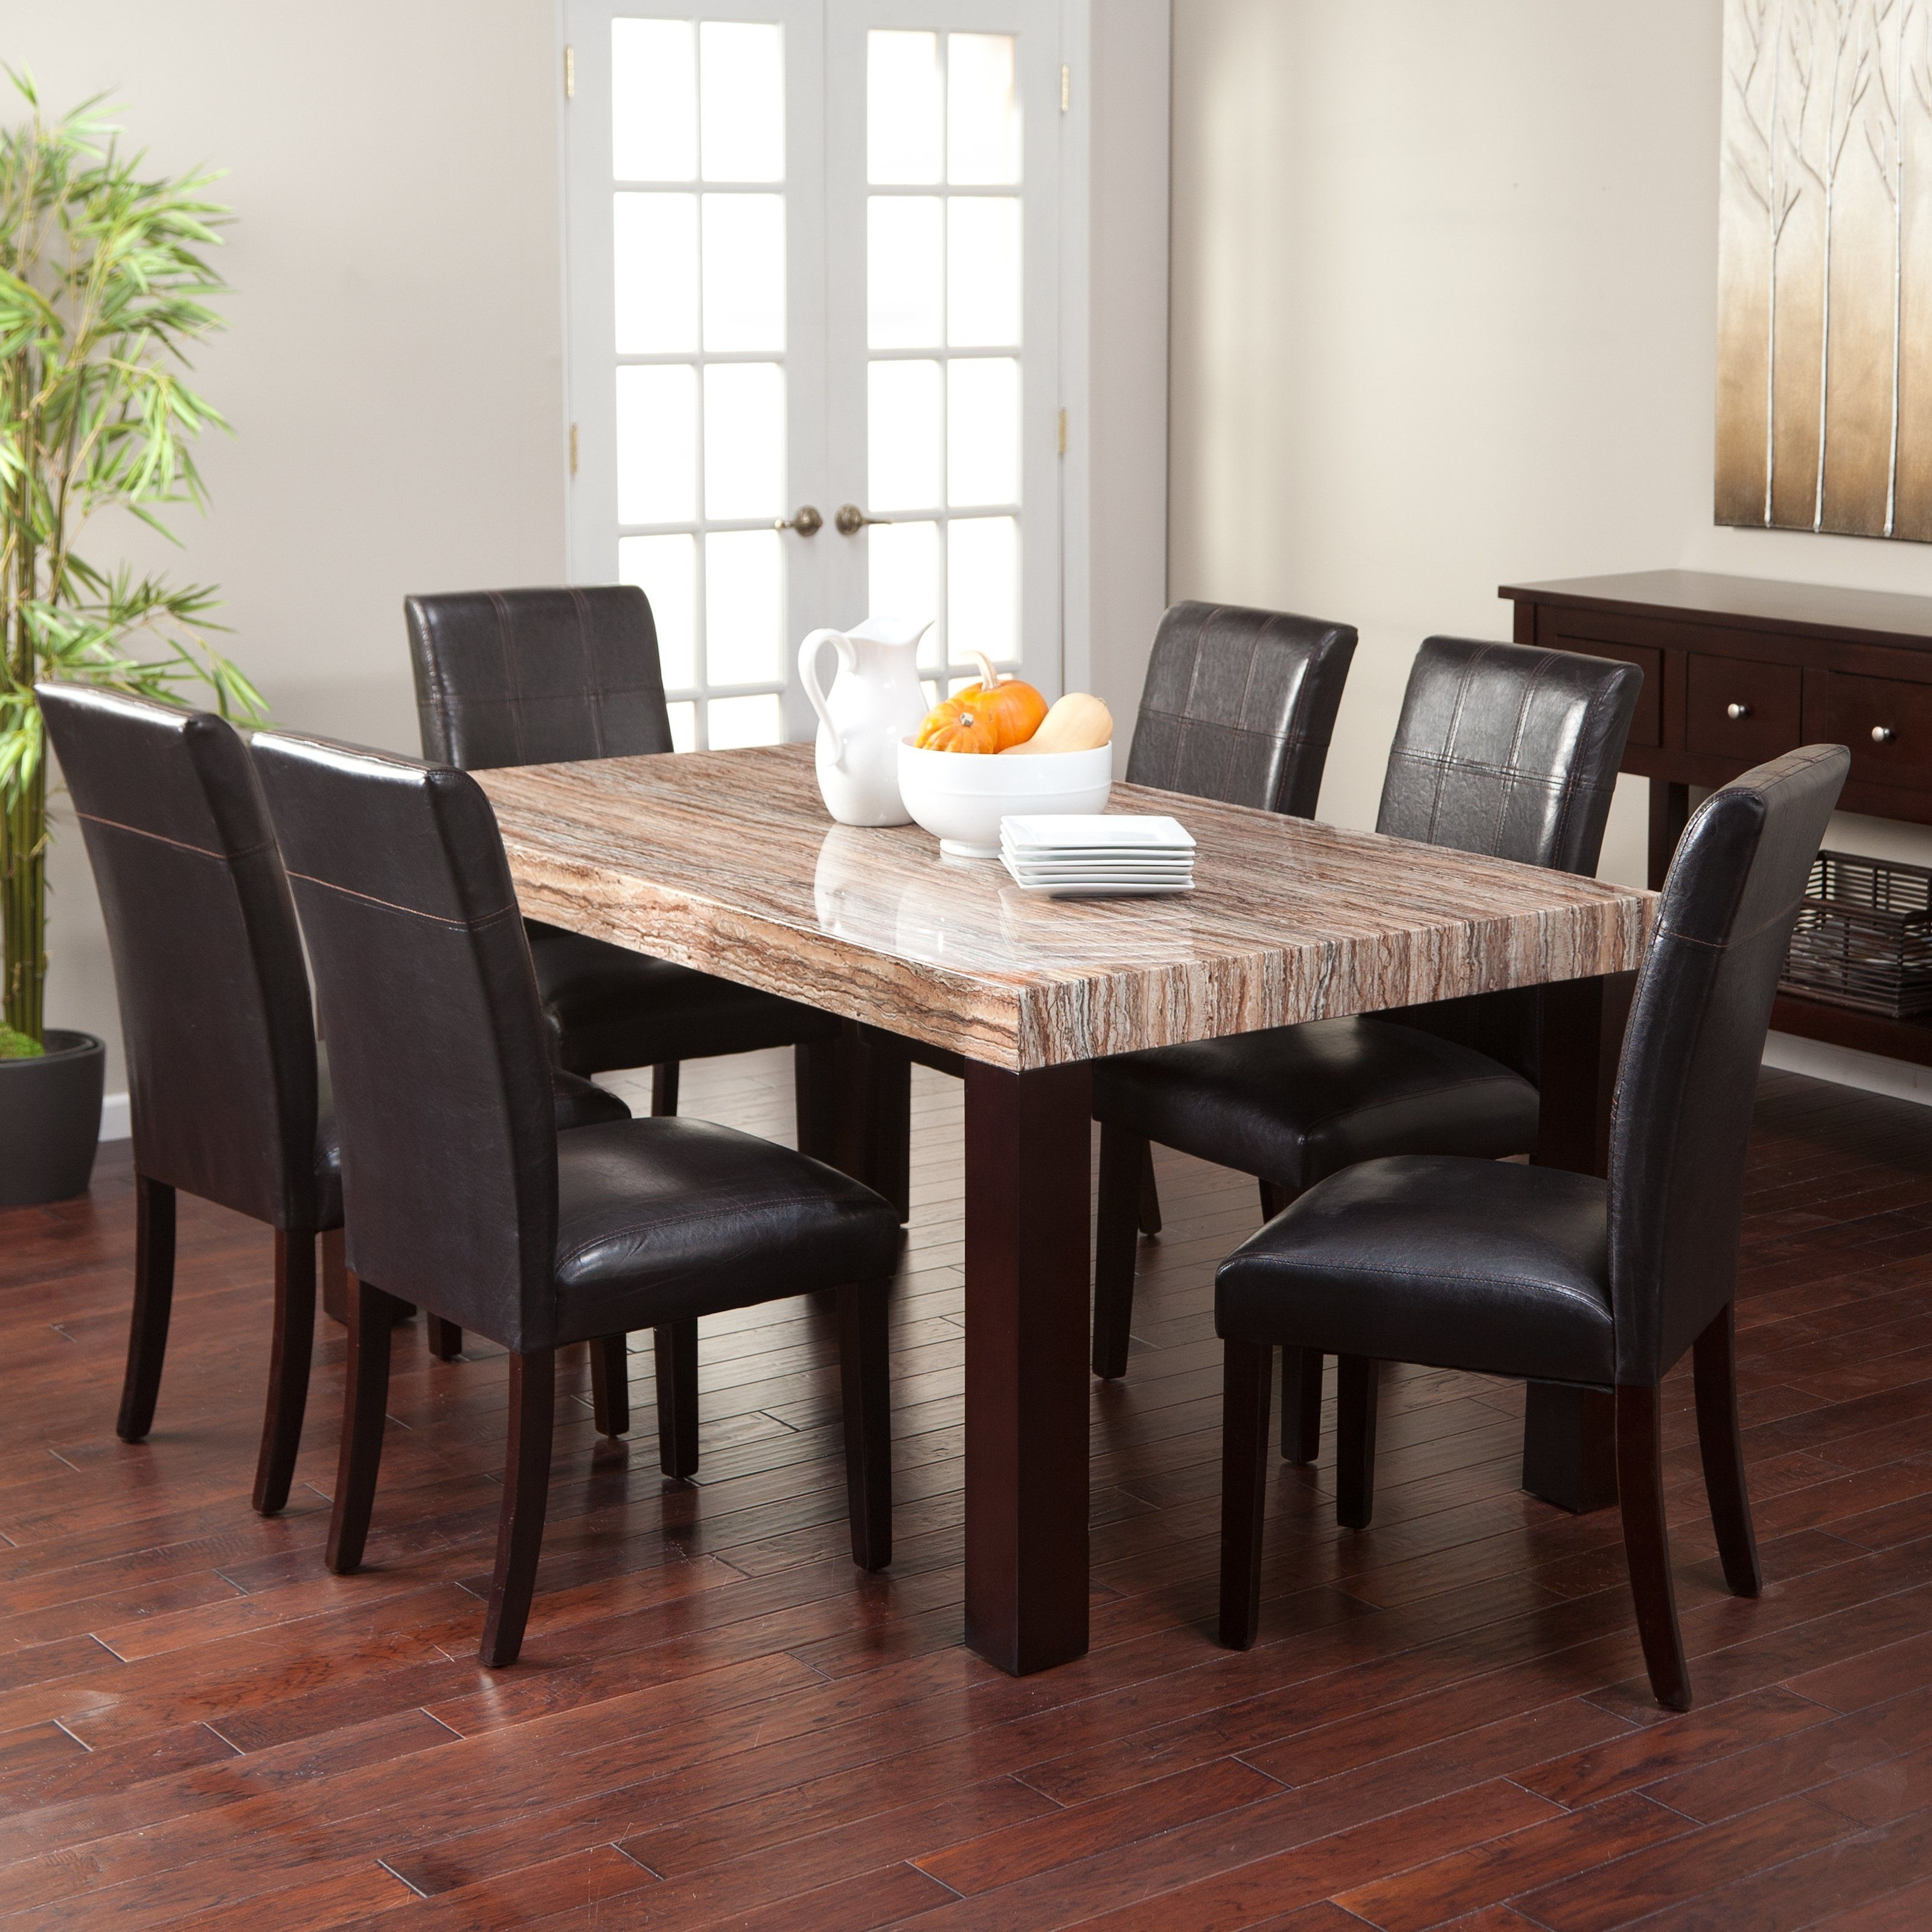 Parquet 7 Piece Dining Sets Throughout Trendy Carmine 7 Piece Dining Table Set – With Its Creamy Caramel Colored (View 18 of 25)